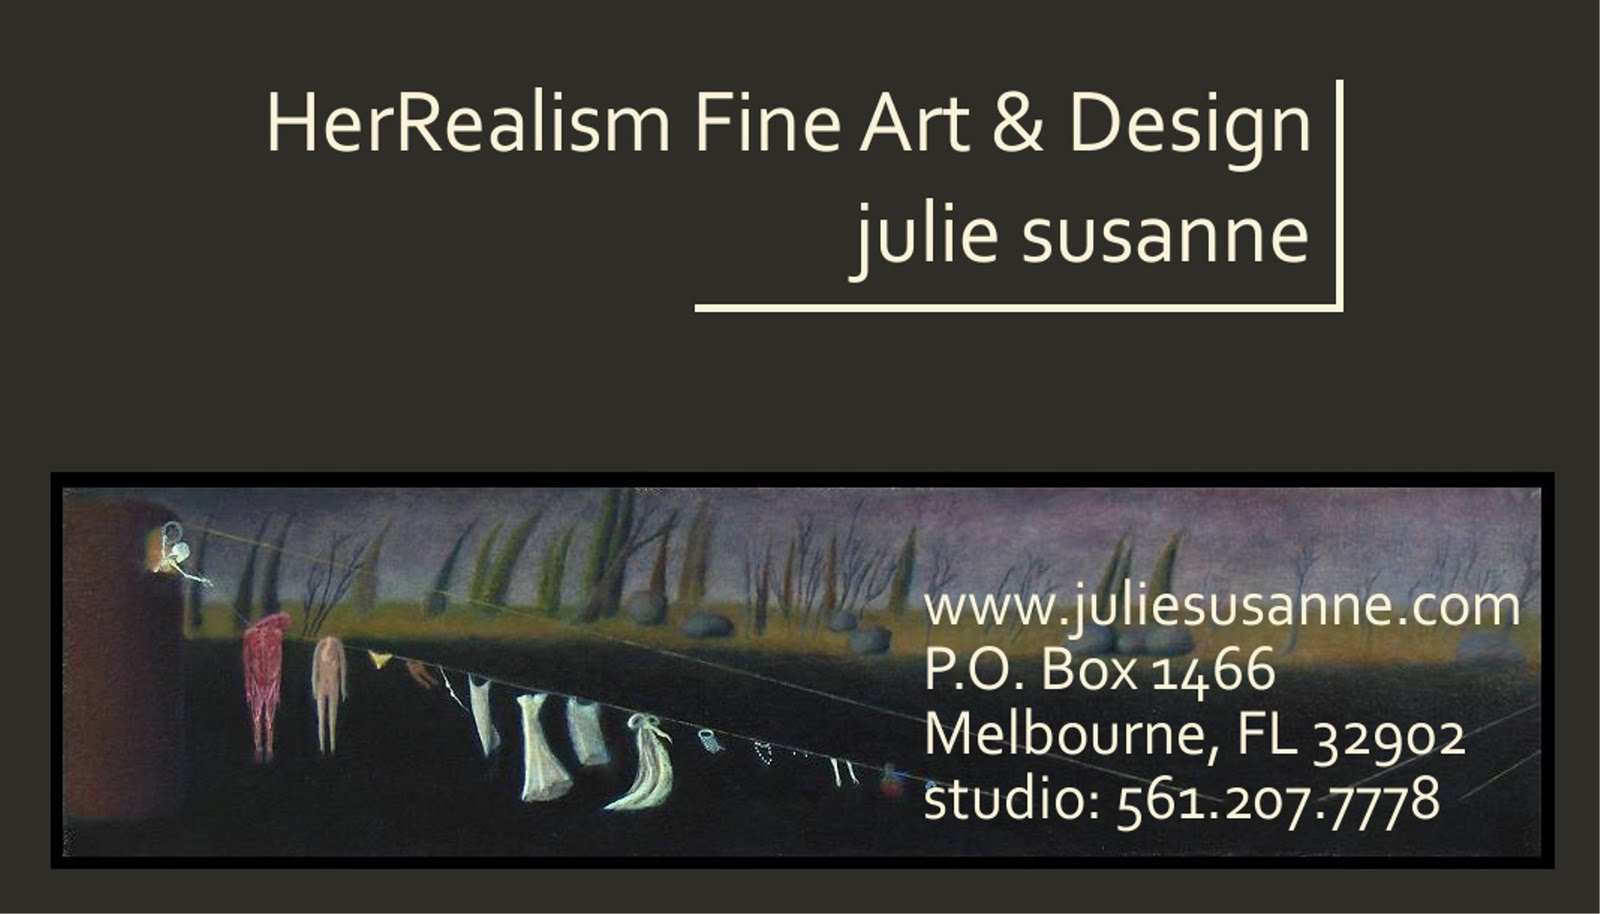 Beyond the artists way by julie susanne flaunt it business cards herrealism fine art and design business card draft colourmoves